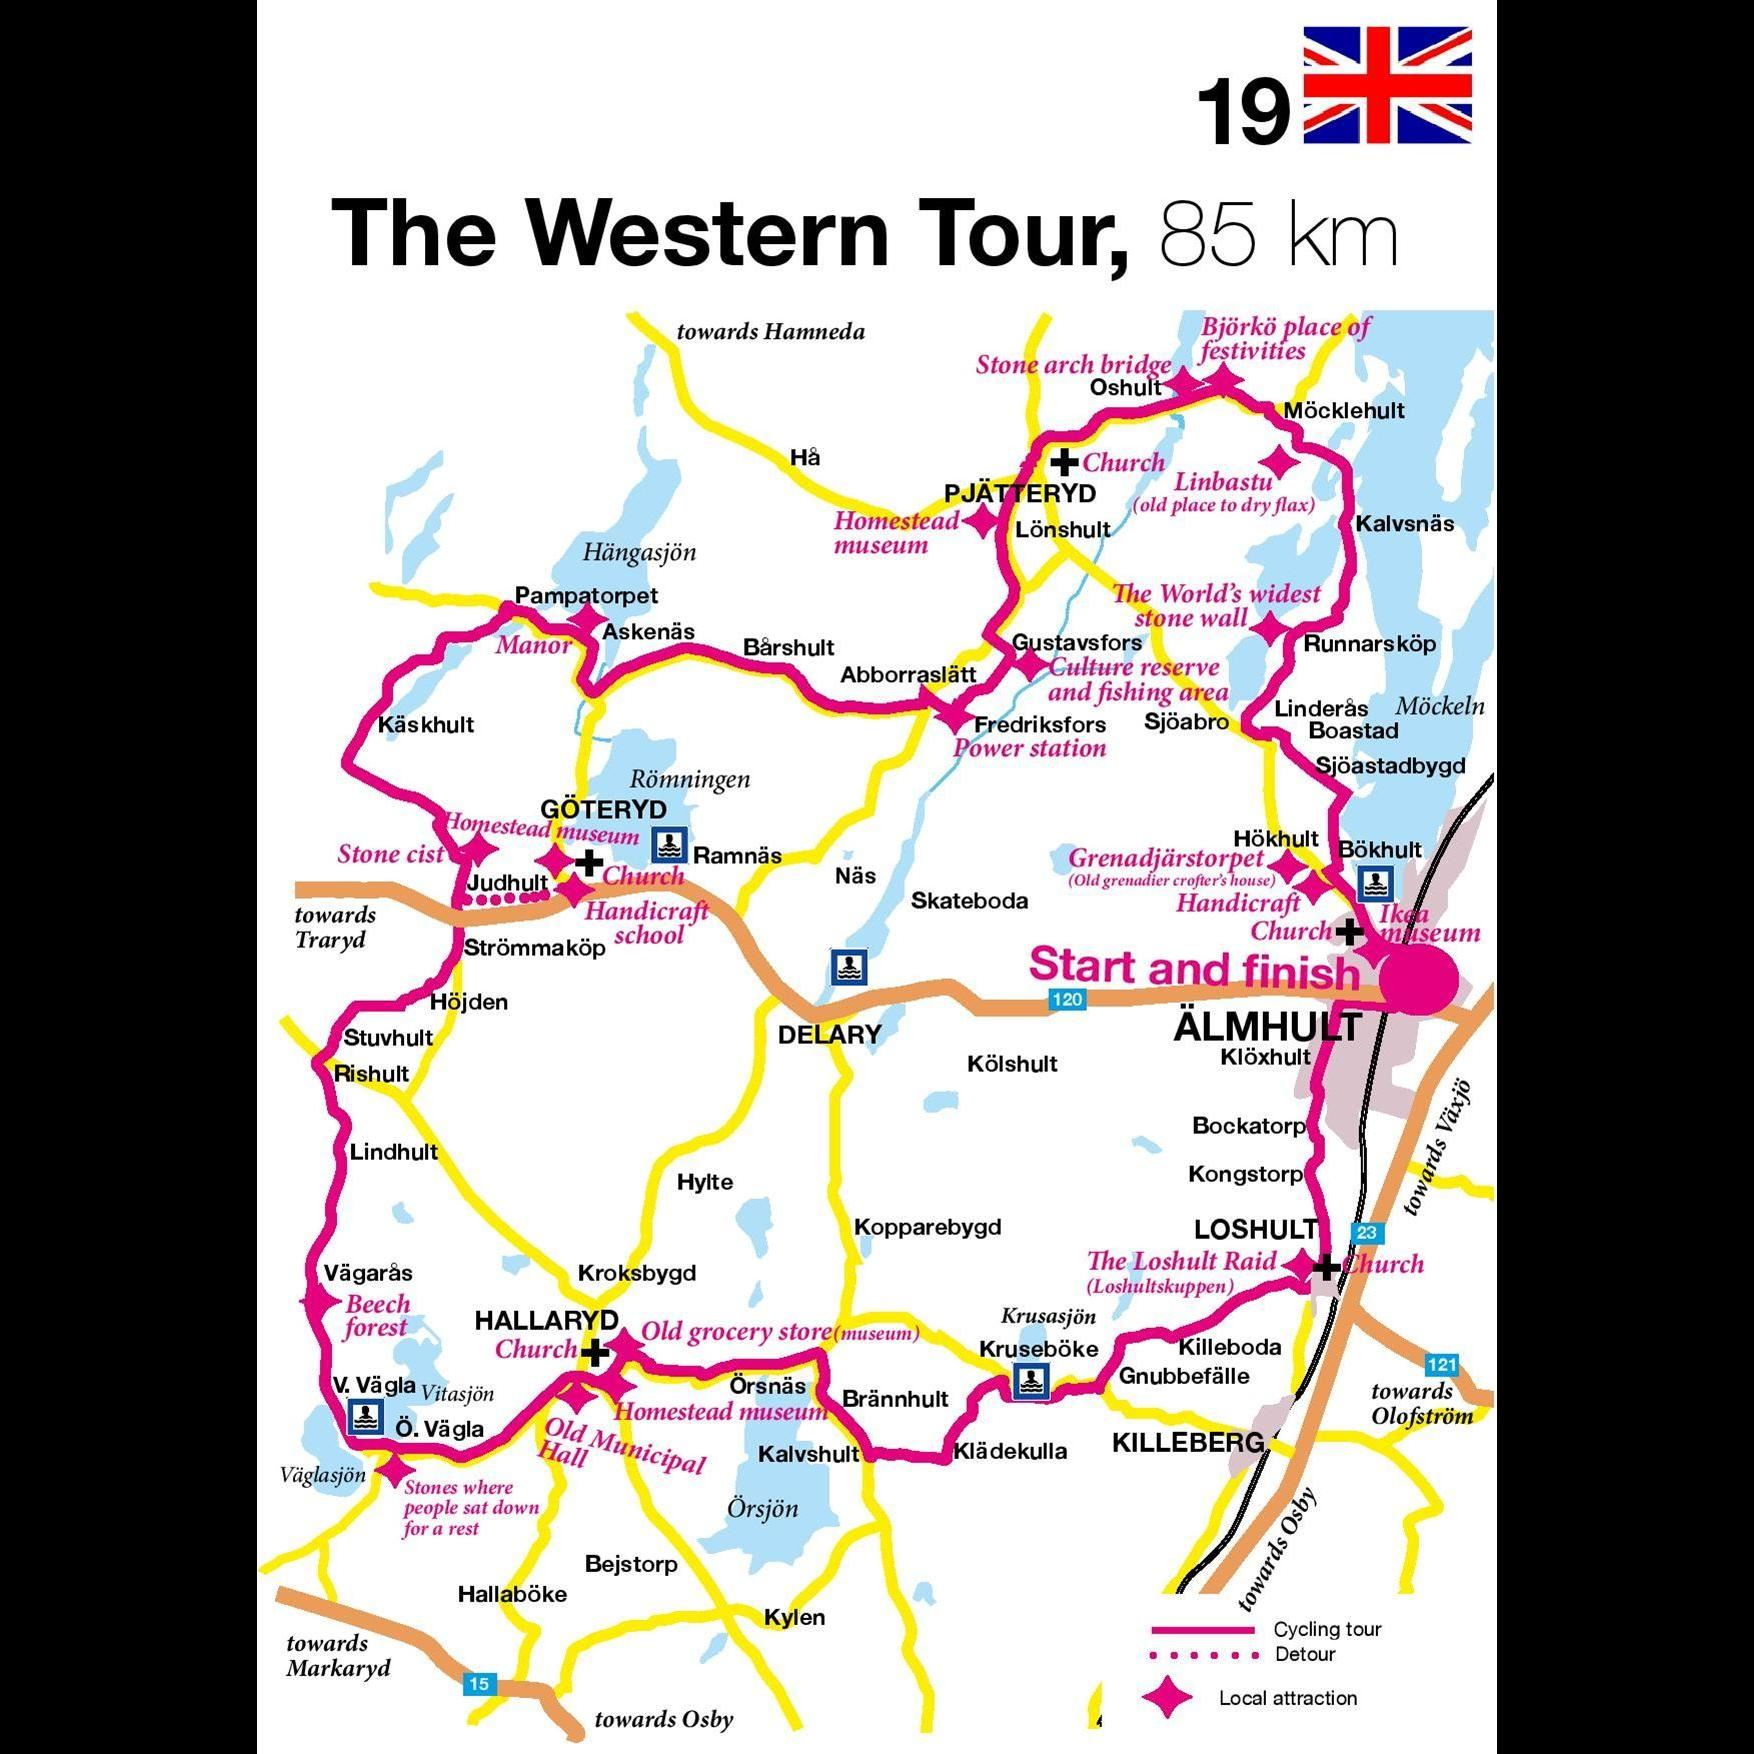 Bicycling tour - The Western Tour - 85 km